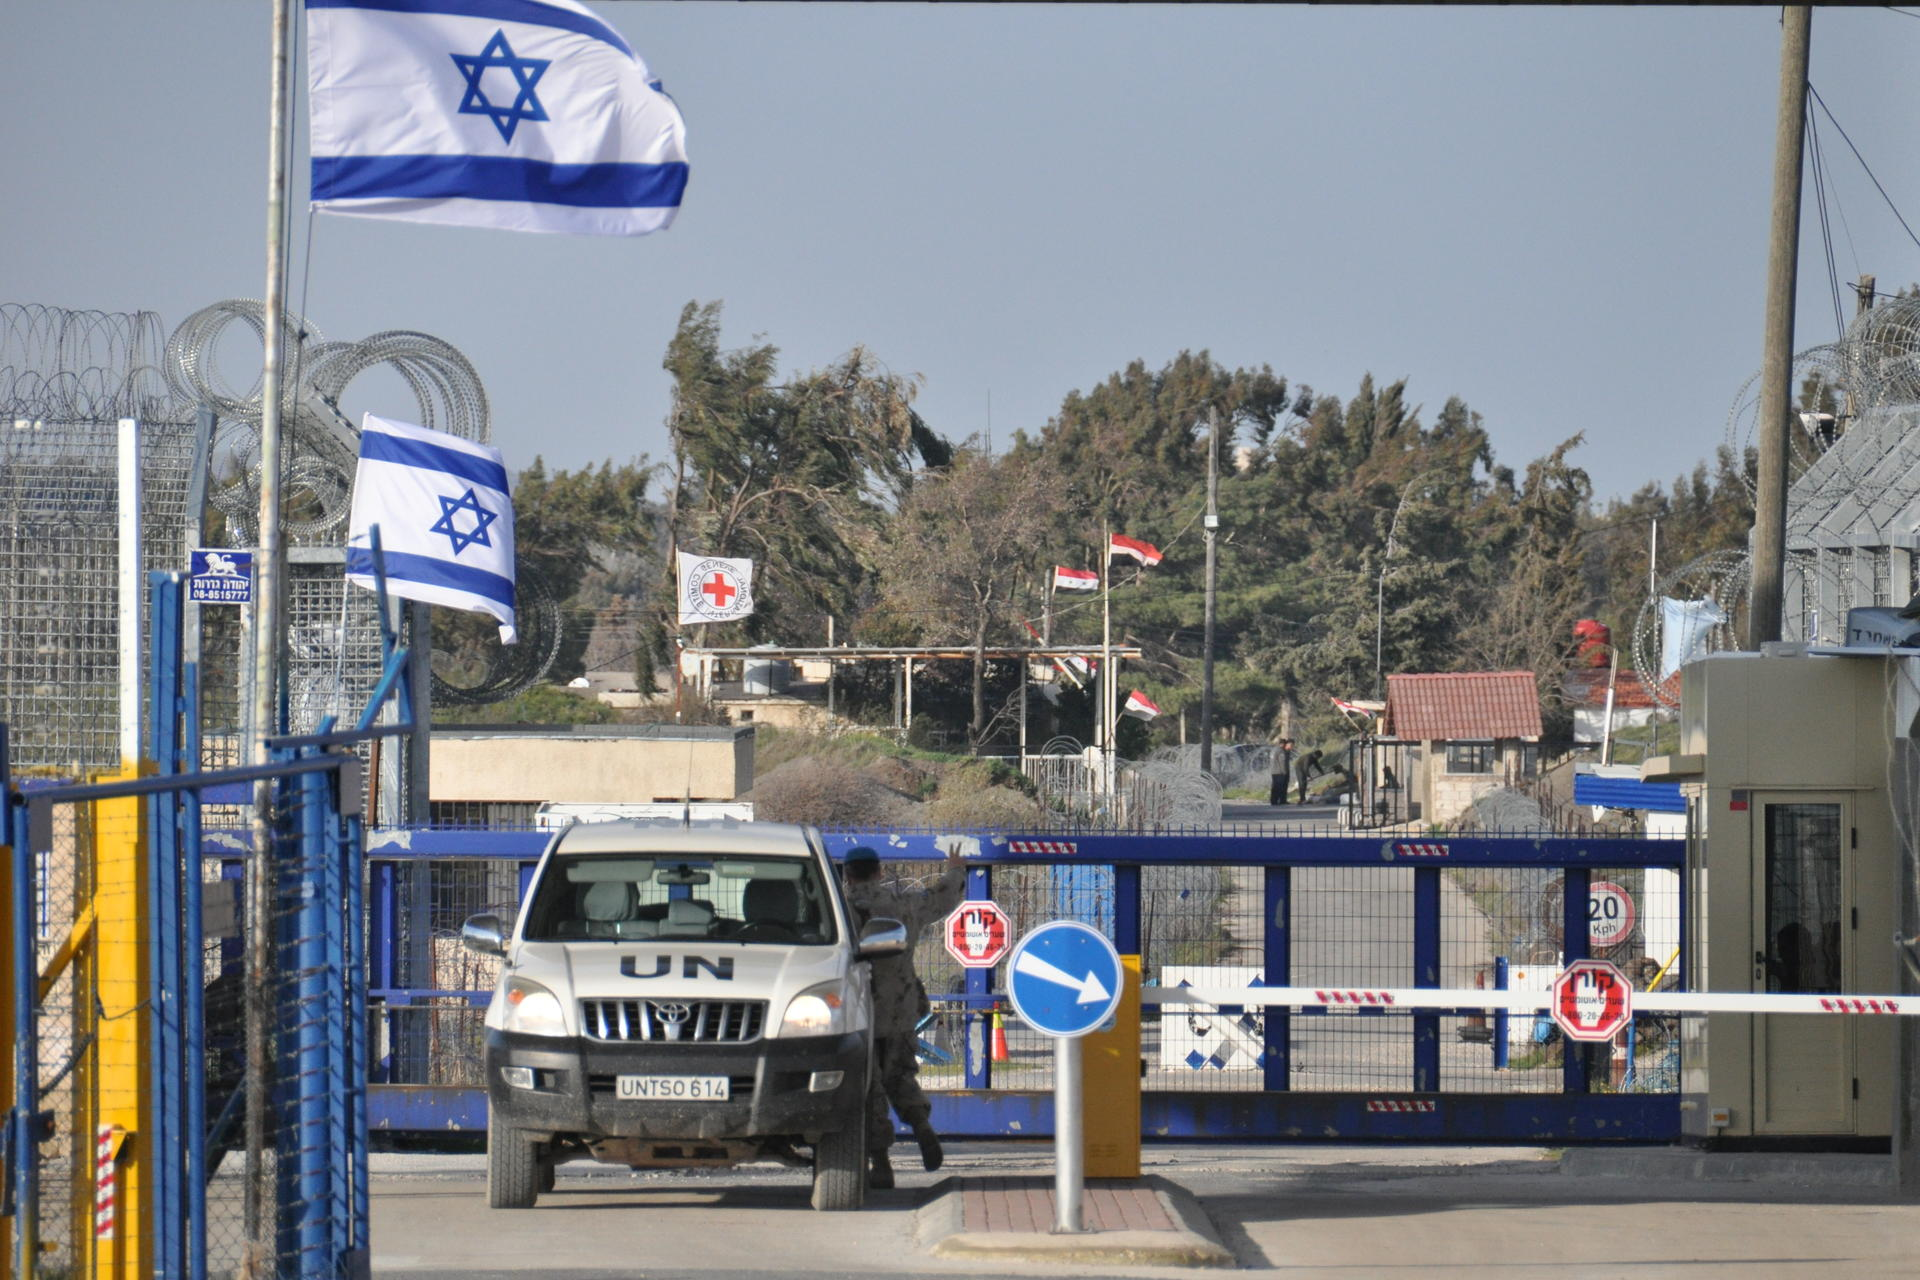 UN vehicle at Golan Heights border crossing point